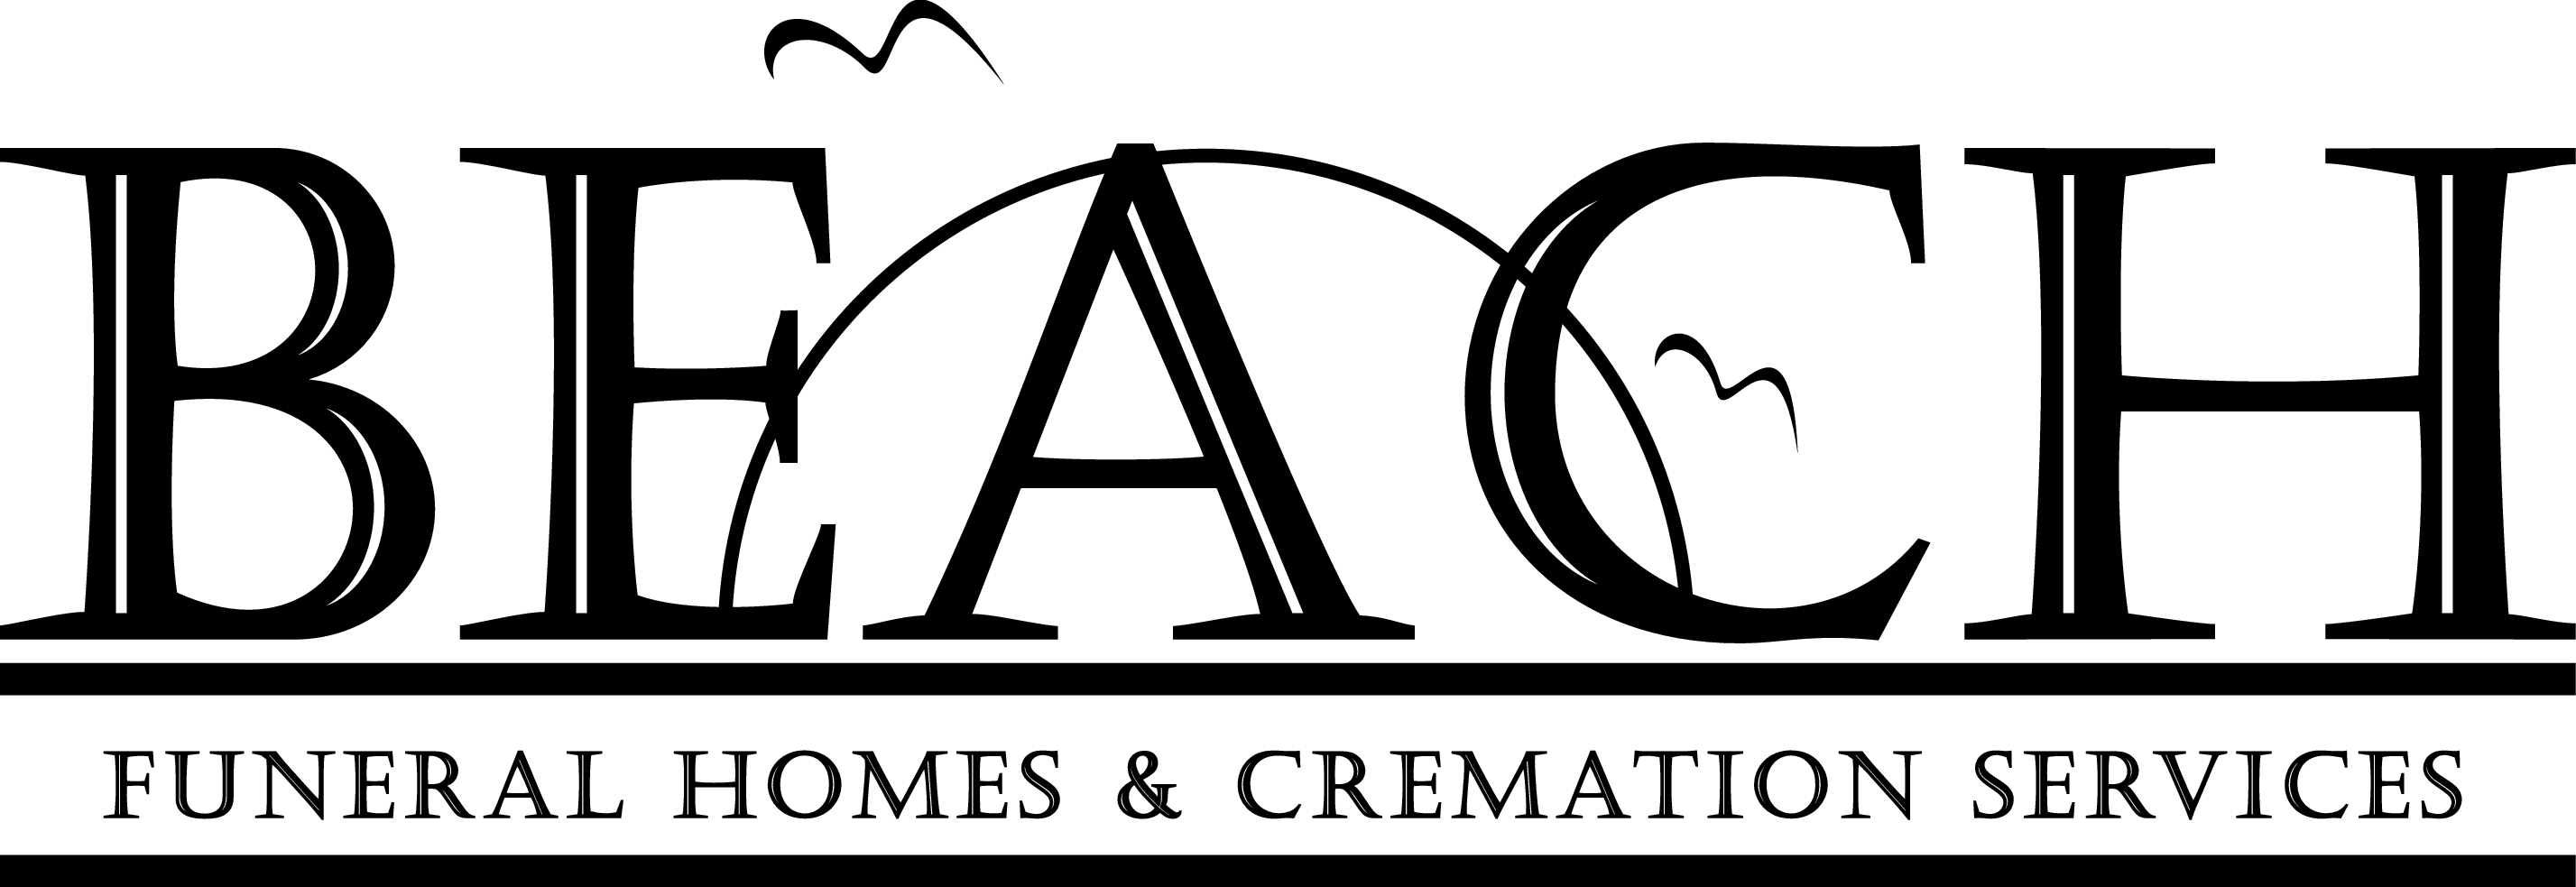 Beach Funeral Homes - East